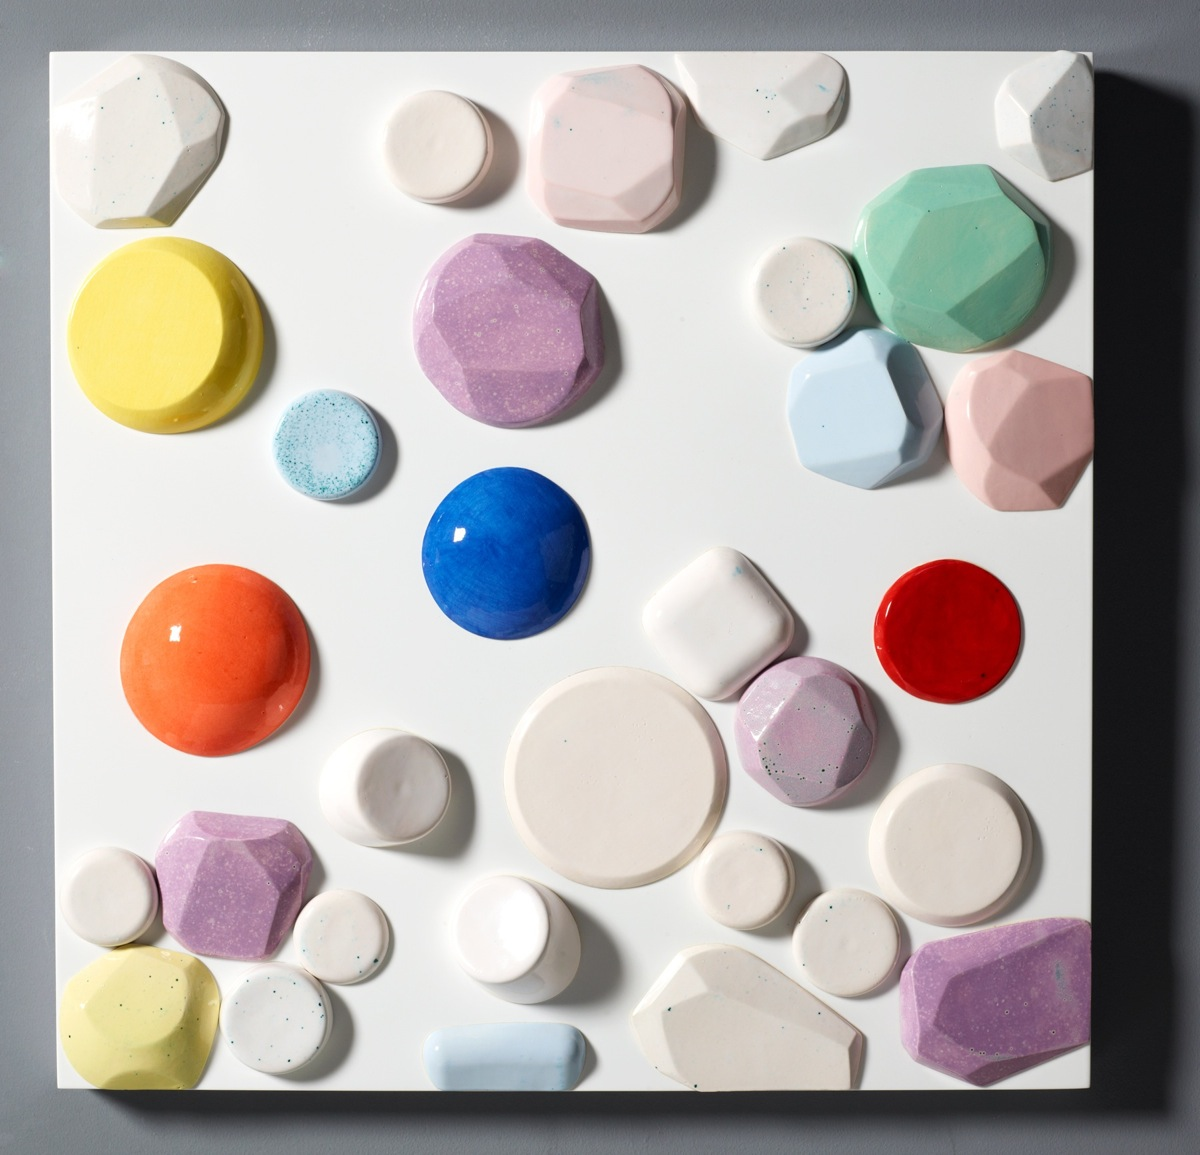 """Candy Series #6 - 2012 – High Fired Ceramics on Automotive Finished Panel – 24 x 24 <a href=""""mailto:judbergeron@mac.com?subject=Inquire: Candy Series #6 - 2012"""">Inquire</a>"""